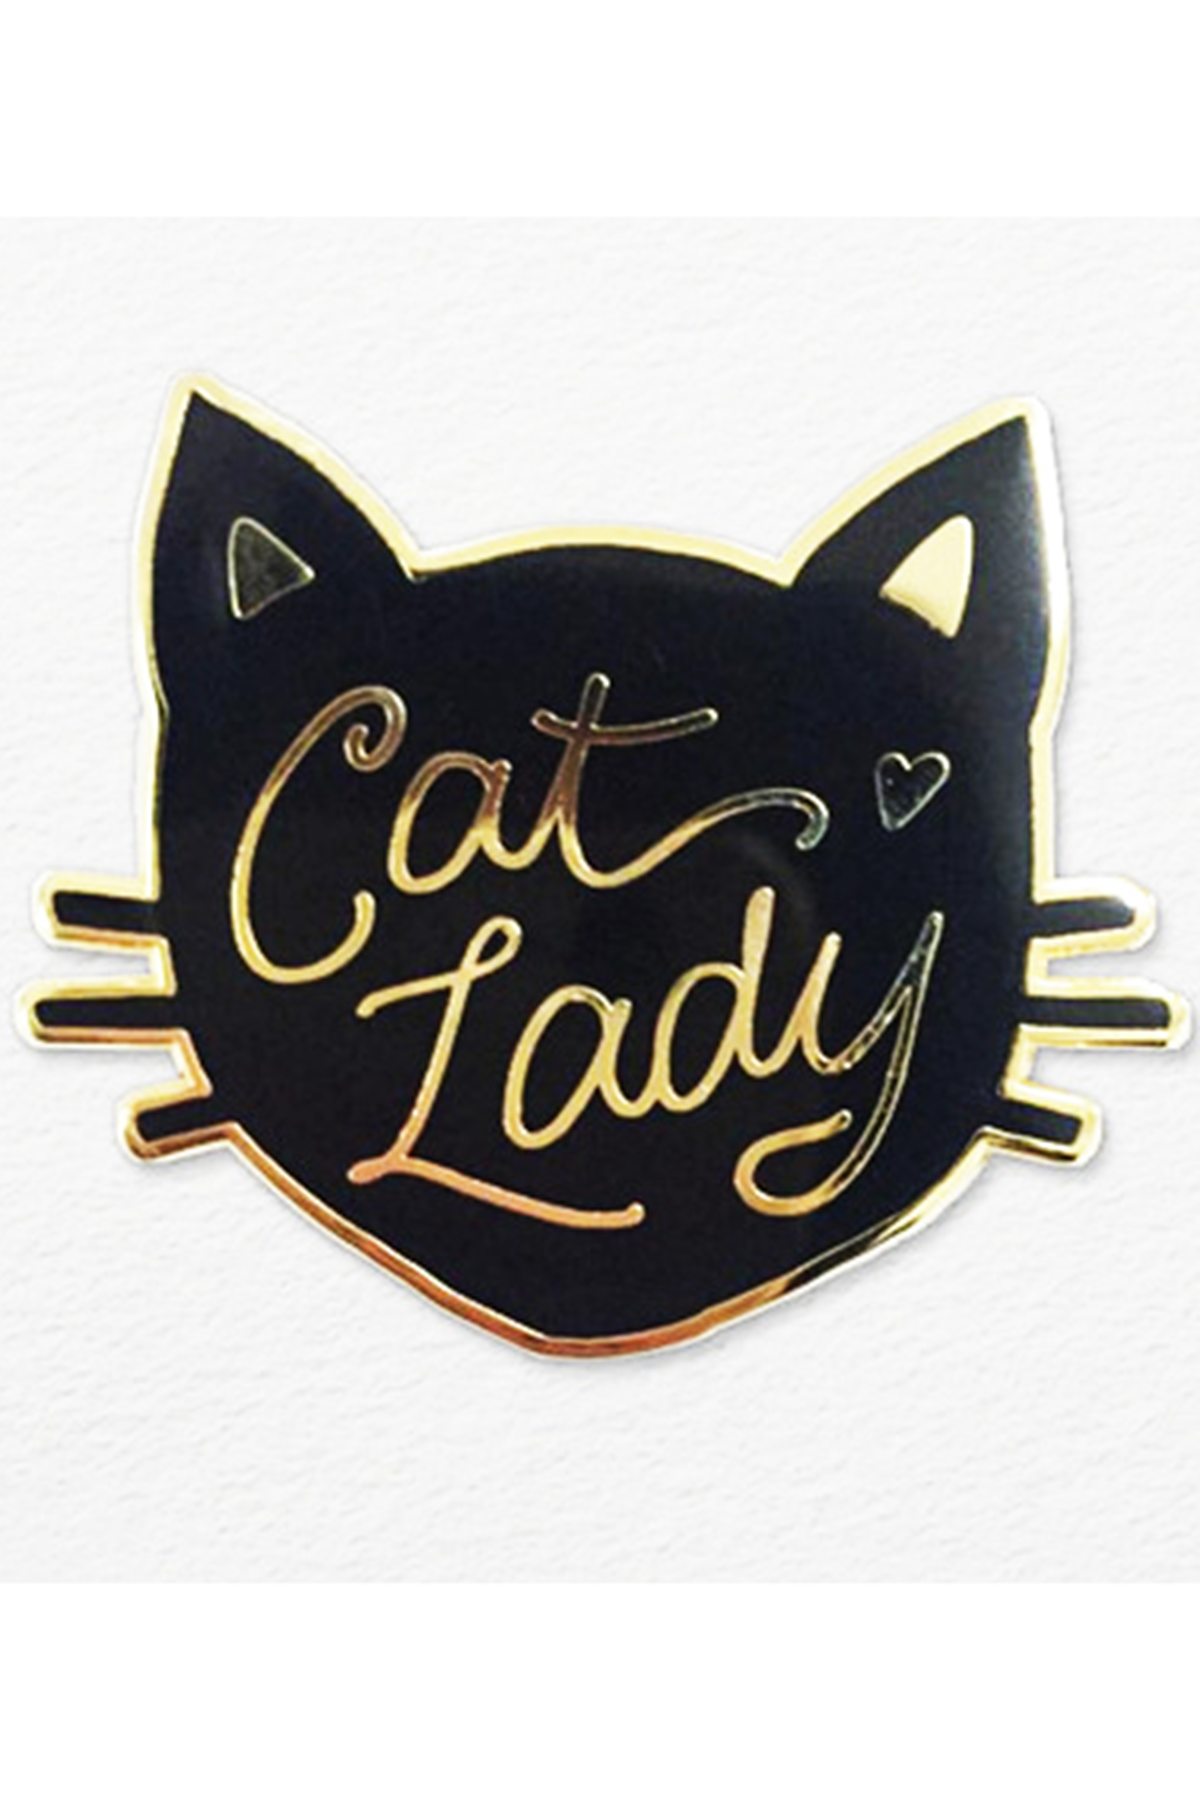 Calling all cat ladies! This lapel pin makes the most charming accessory! Wear on your jacket, sweater, shirt collar, tote bag, or anywhere that needs some extra cuteness. Available in black or white.